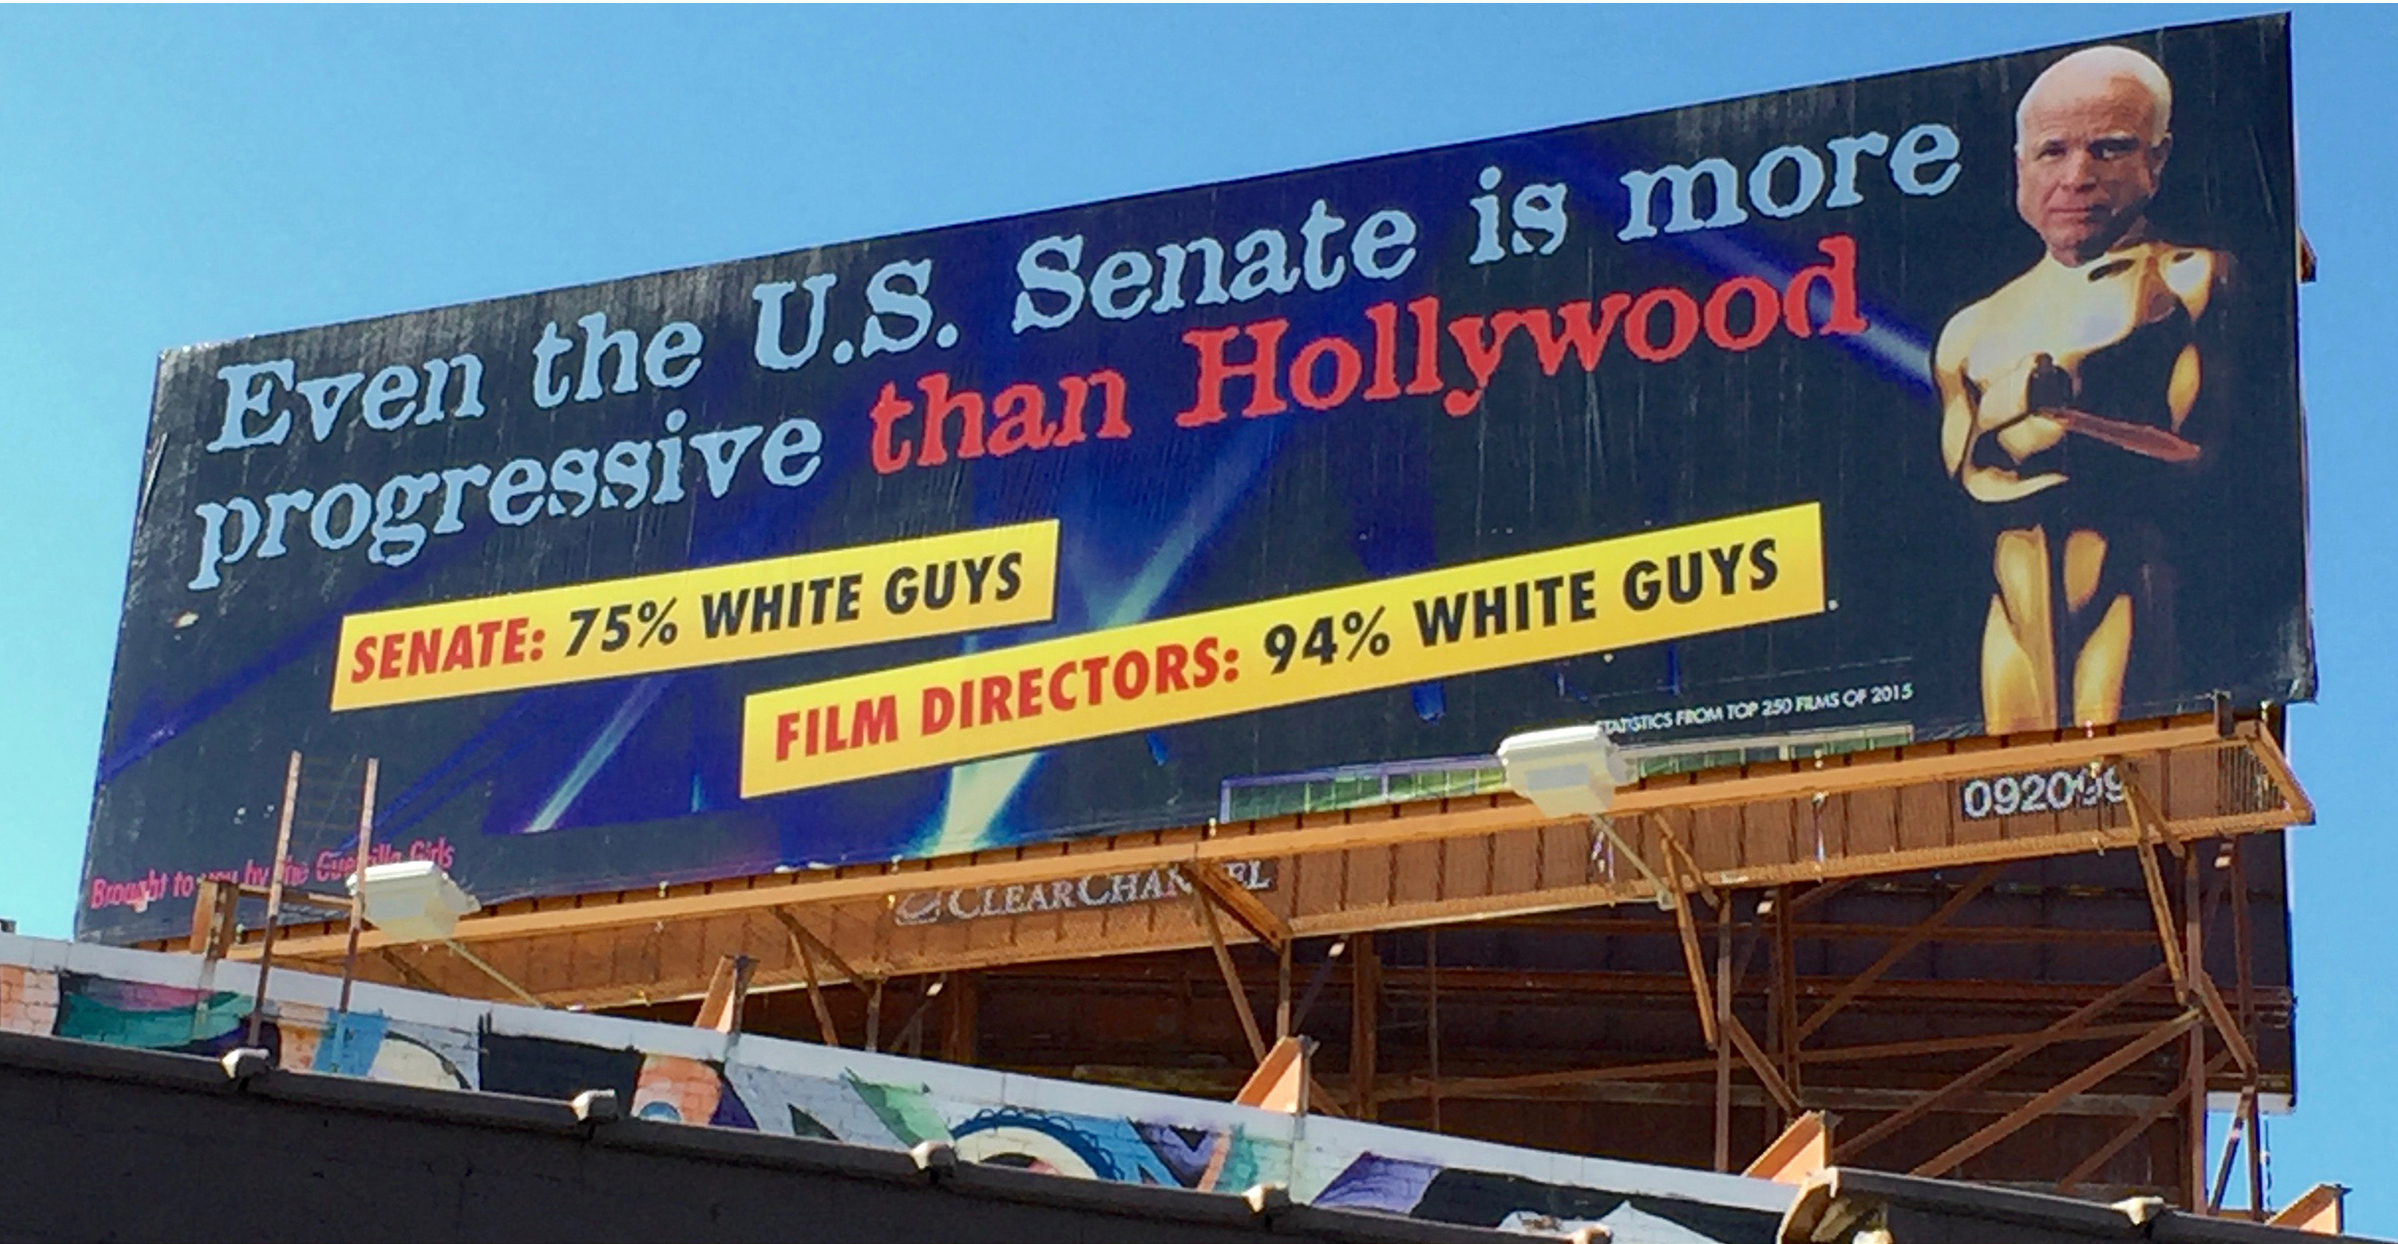 2016 Senate Hennepin billboard.jpg